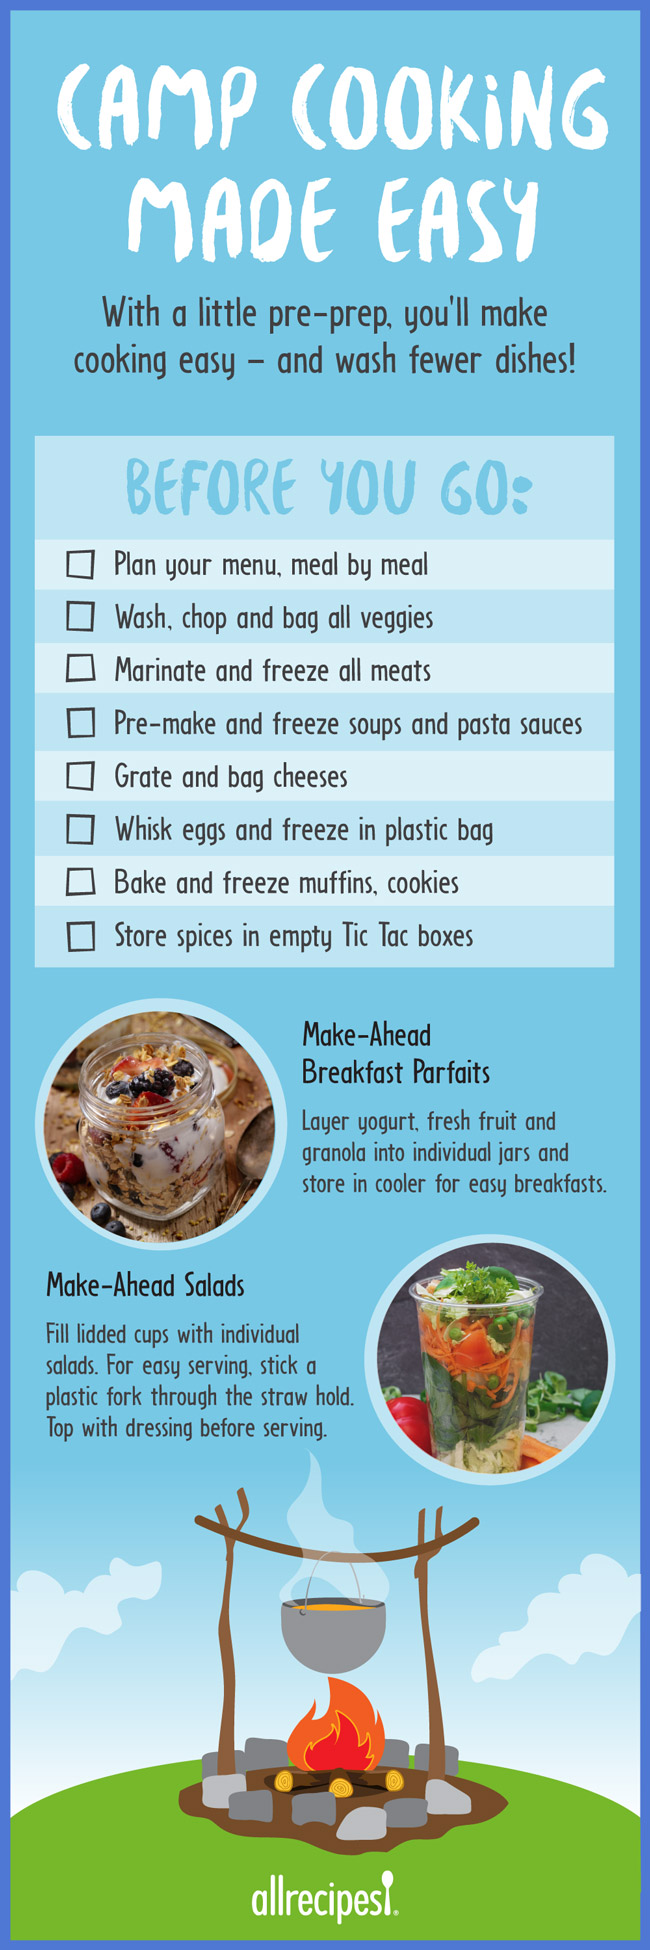 Camp_cooking_made_easy